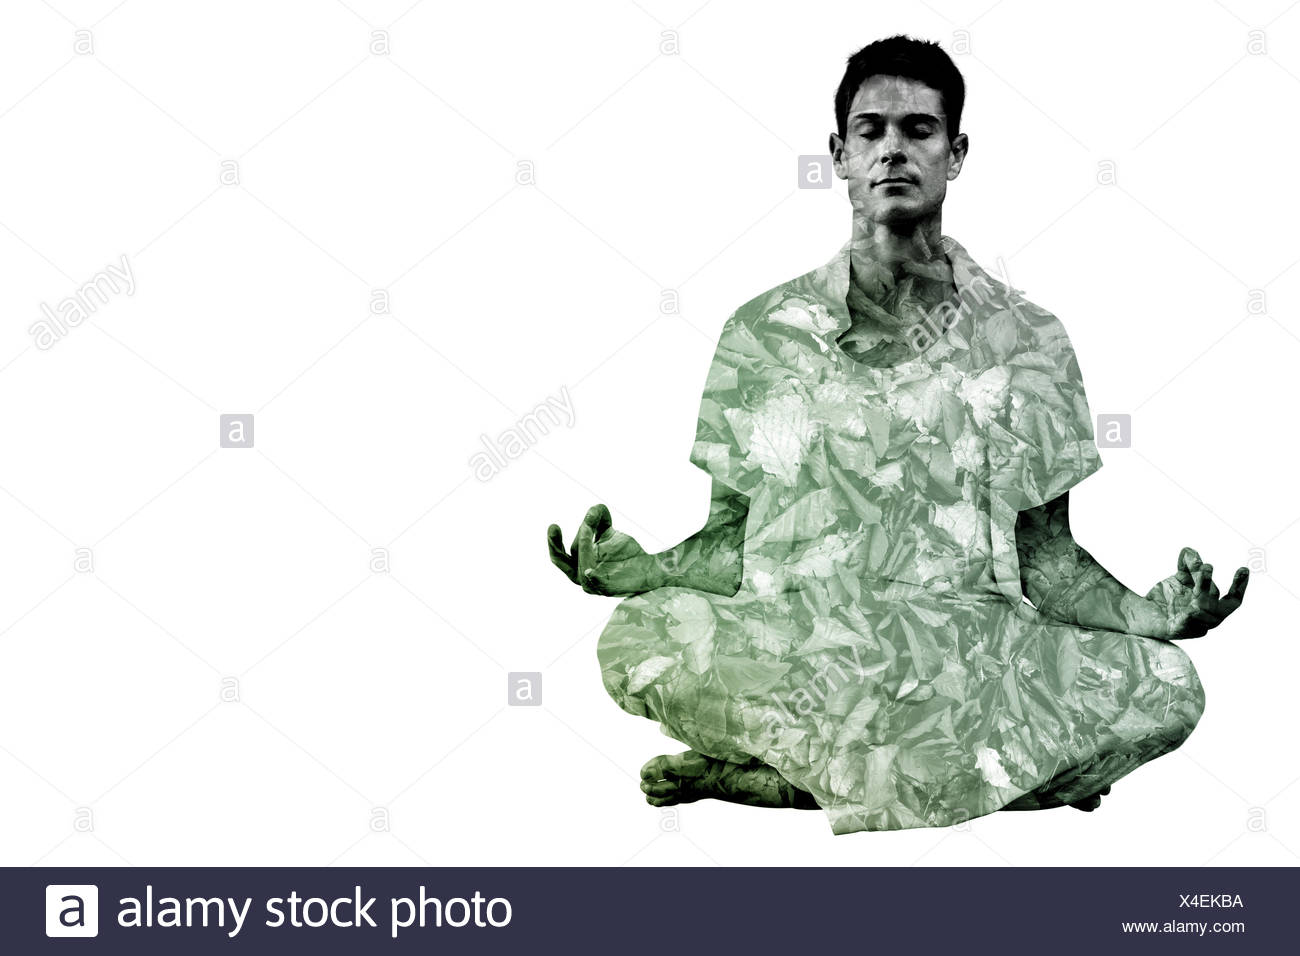 Composite image of handsome man in white meditating in lotus pose - Stock Image